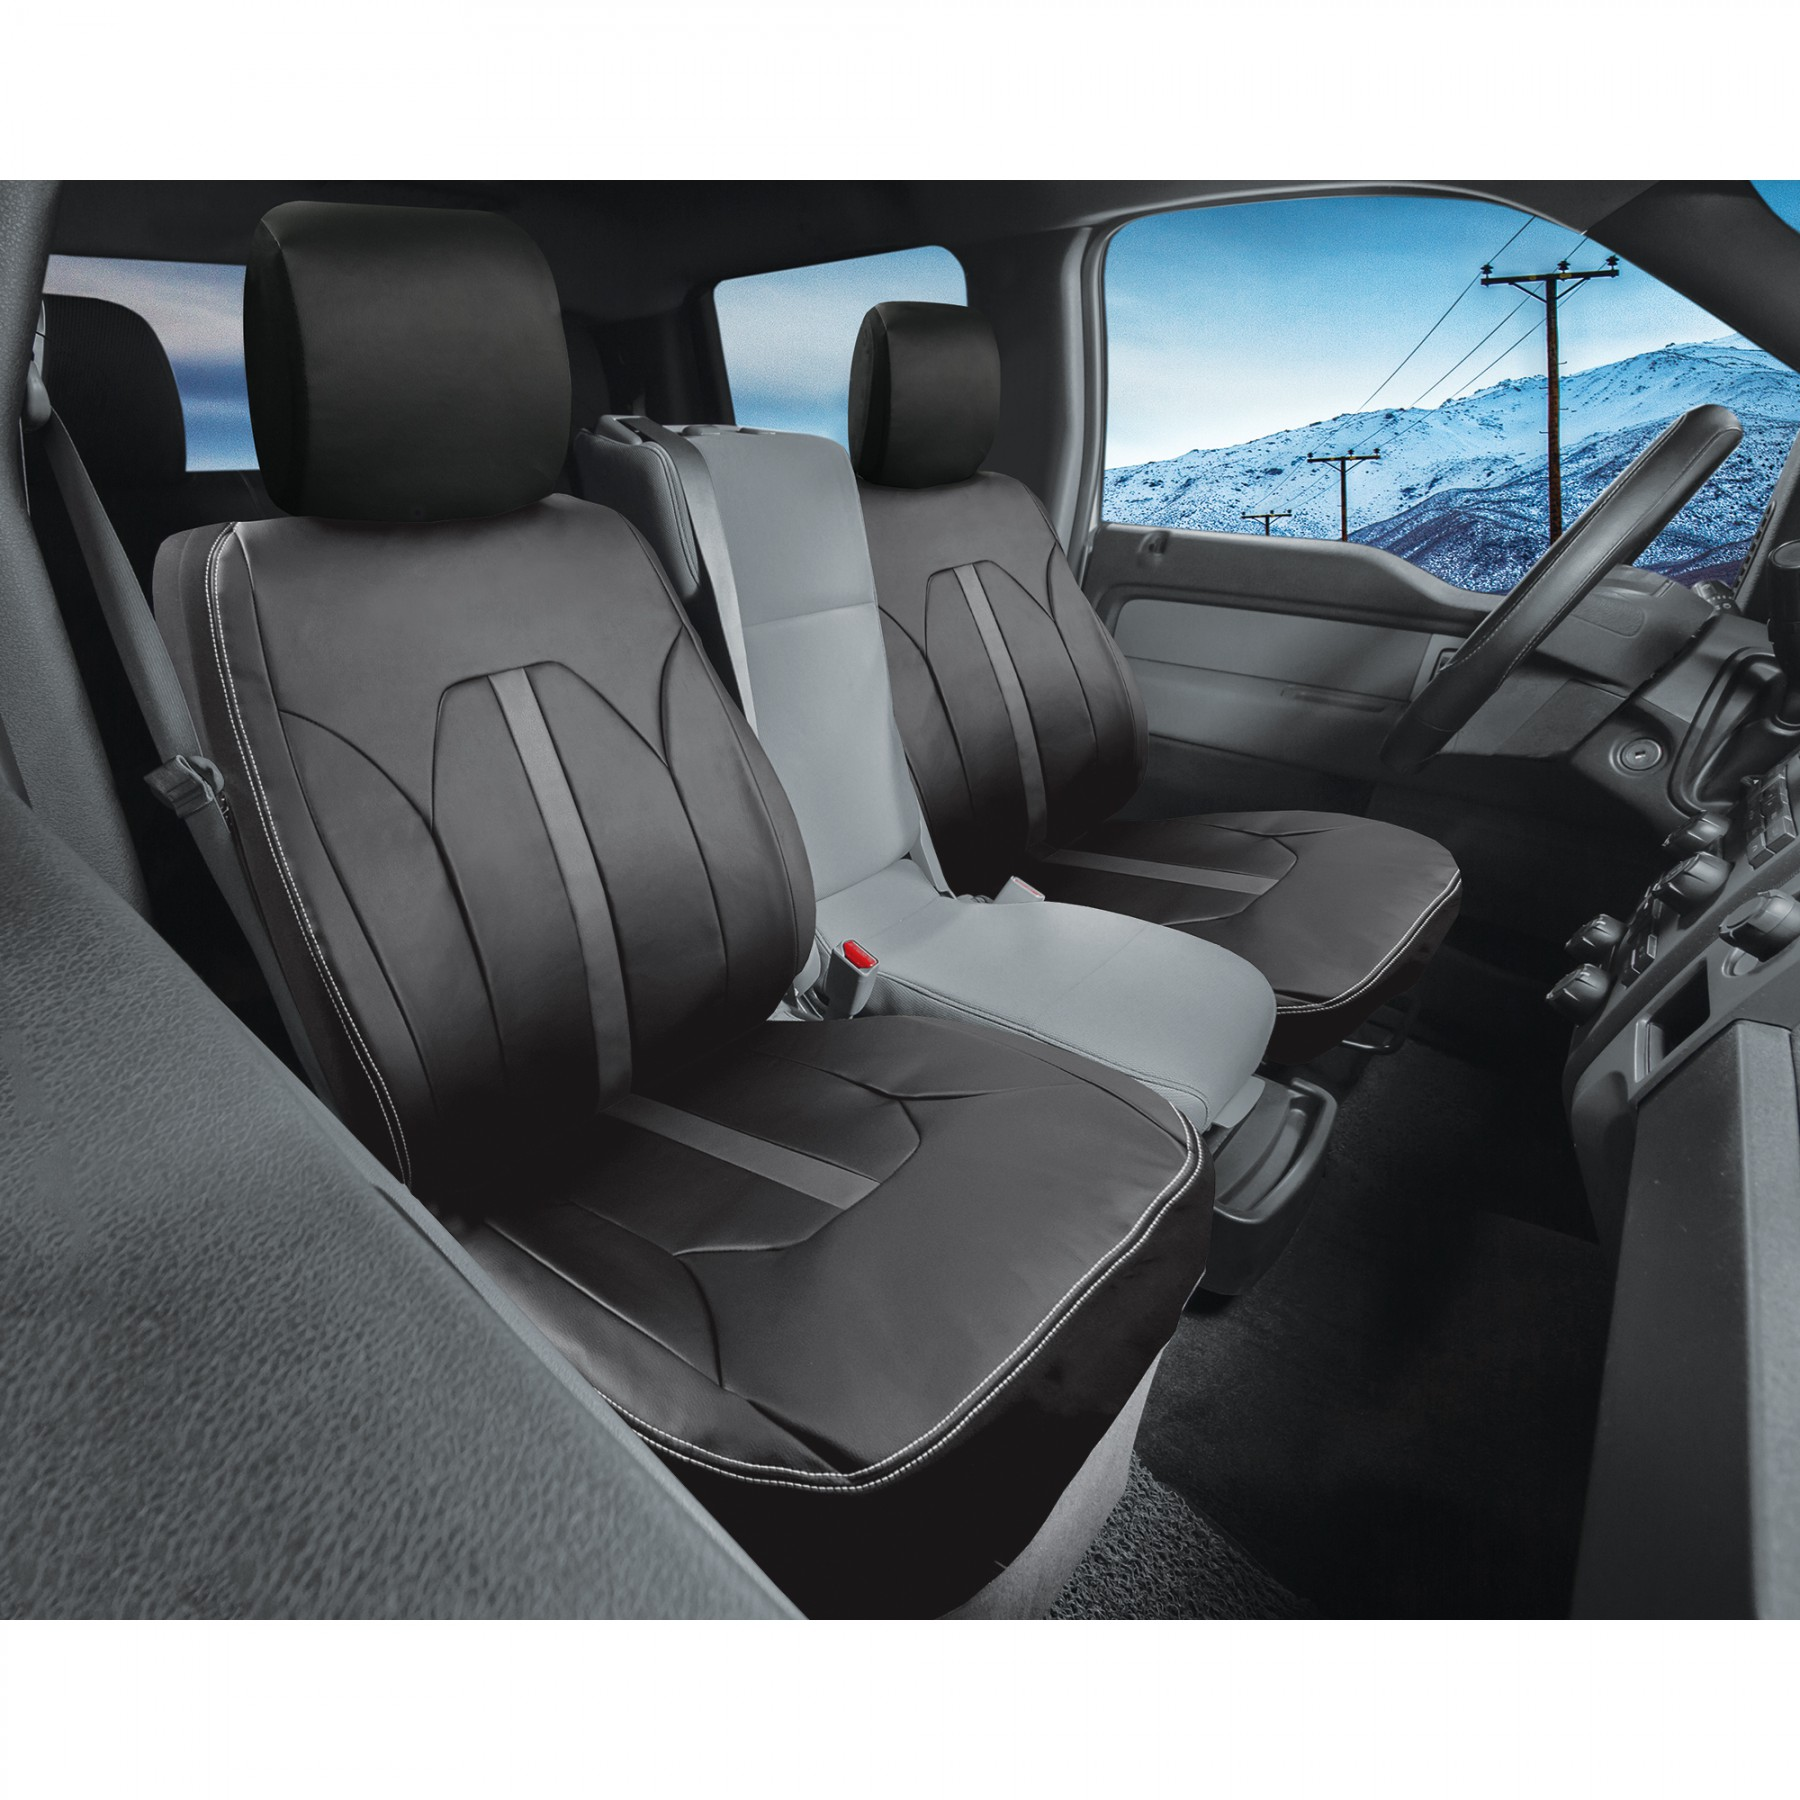 Montana Leather Truck Front Seat Cover Auto Seat Covers